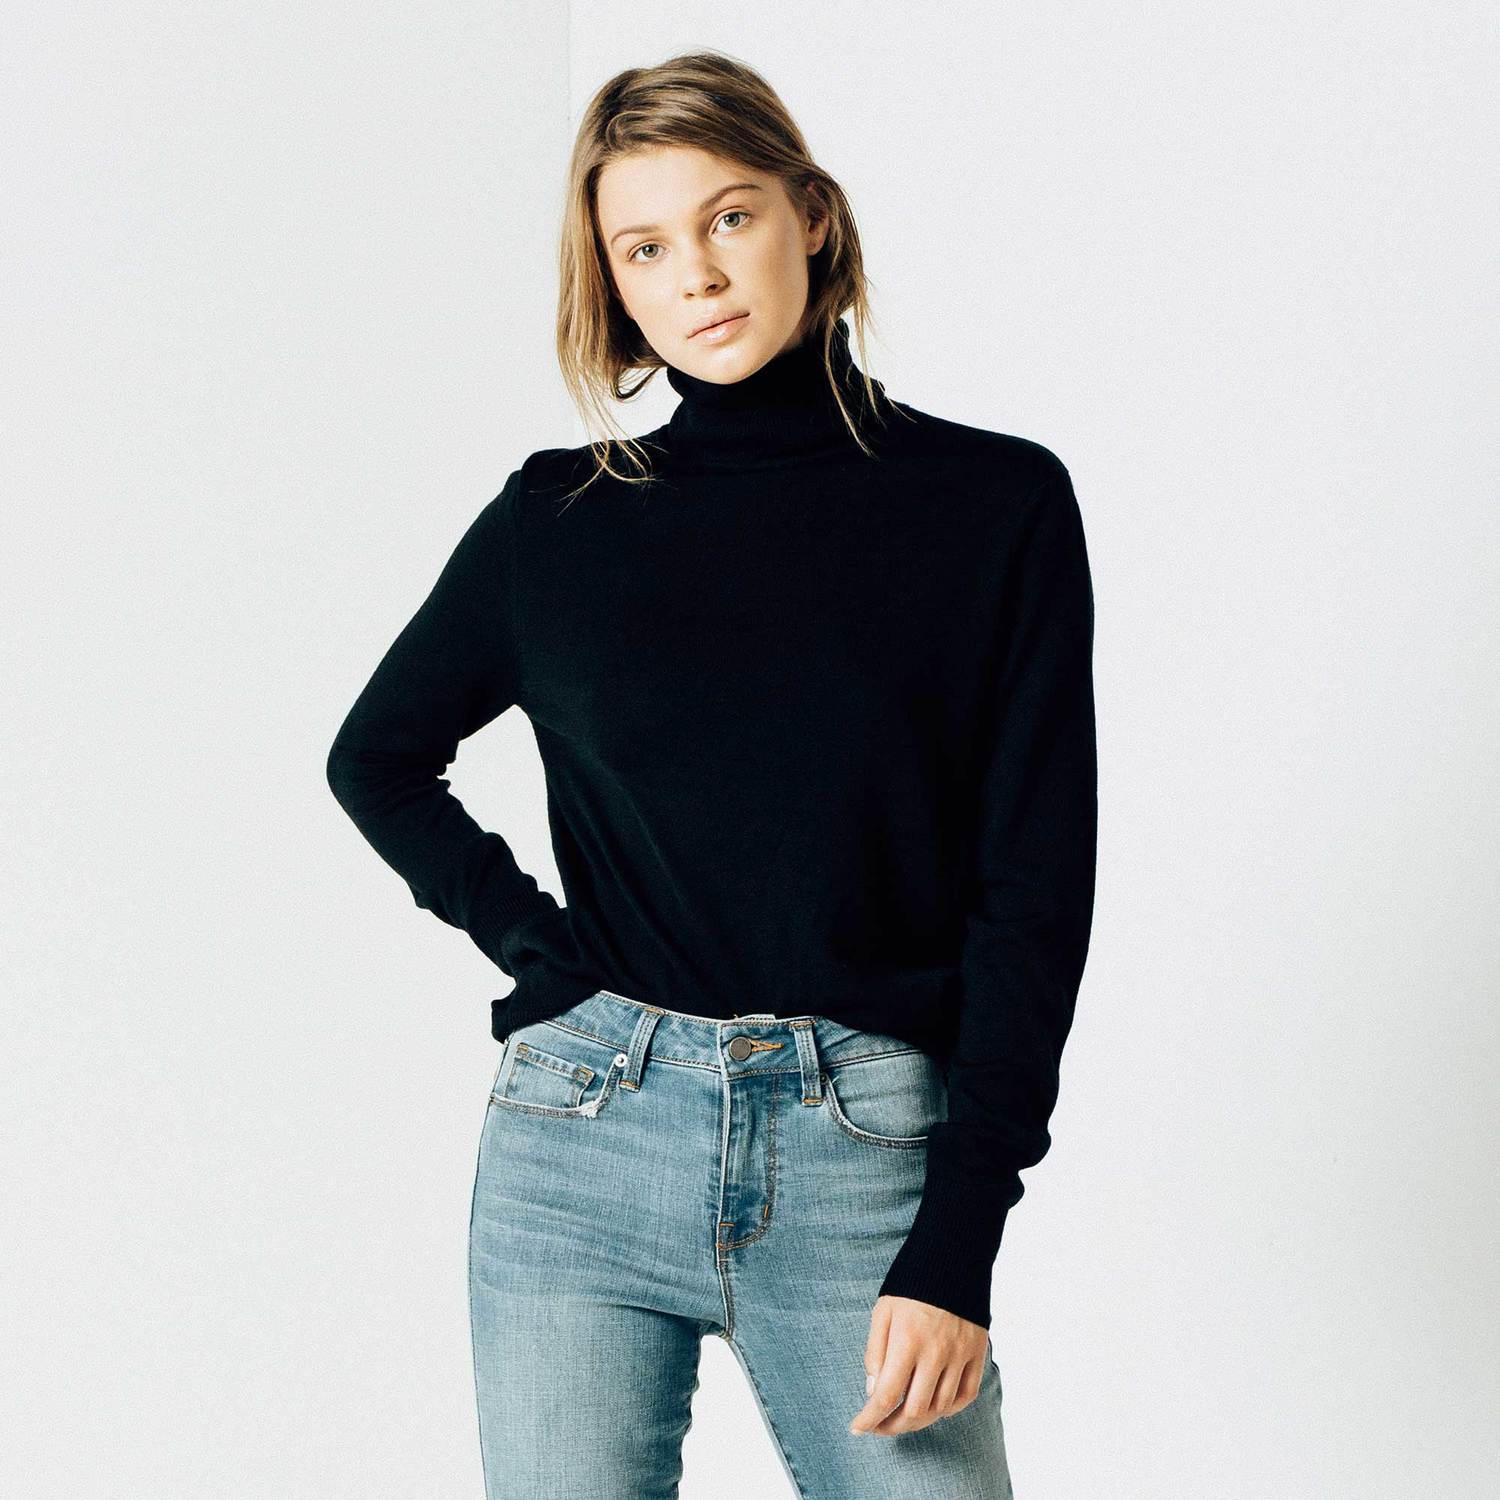 A Gap turtleneck is comfortable, warm and fashion forward. Our turtleneck styles are always popular and our selection includes a variety of styles including button-ups, cowl necks, zip-ups and more.